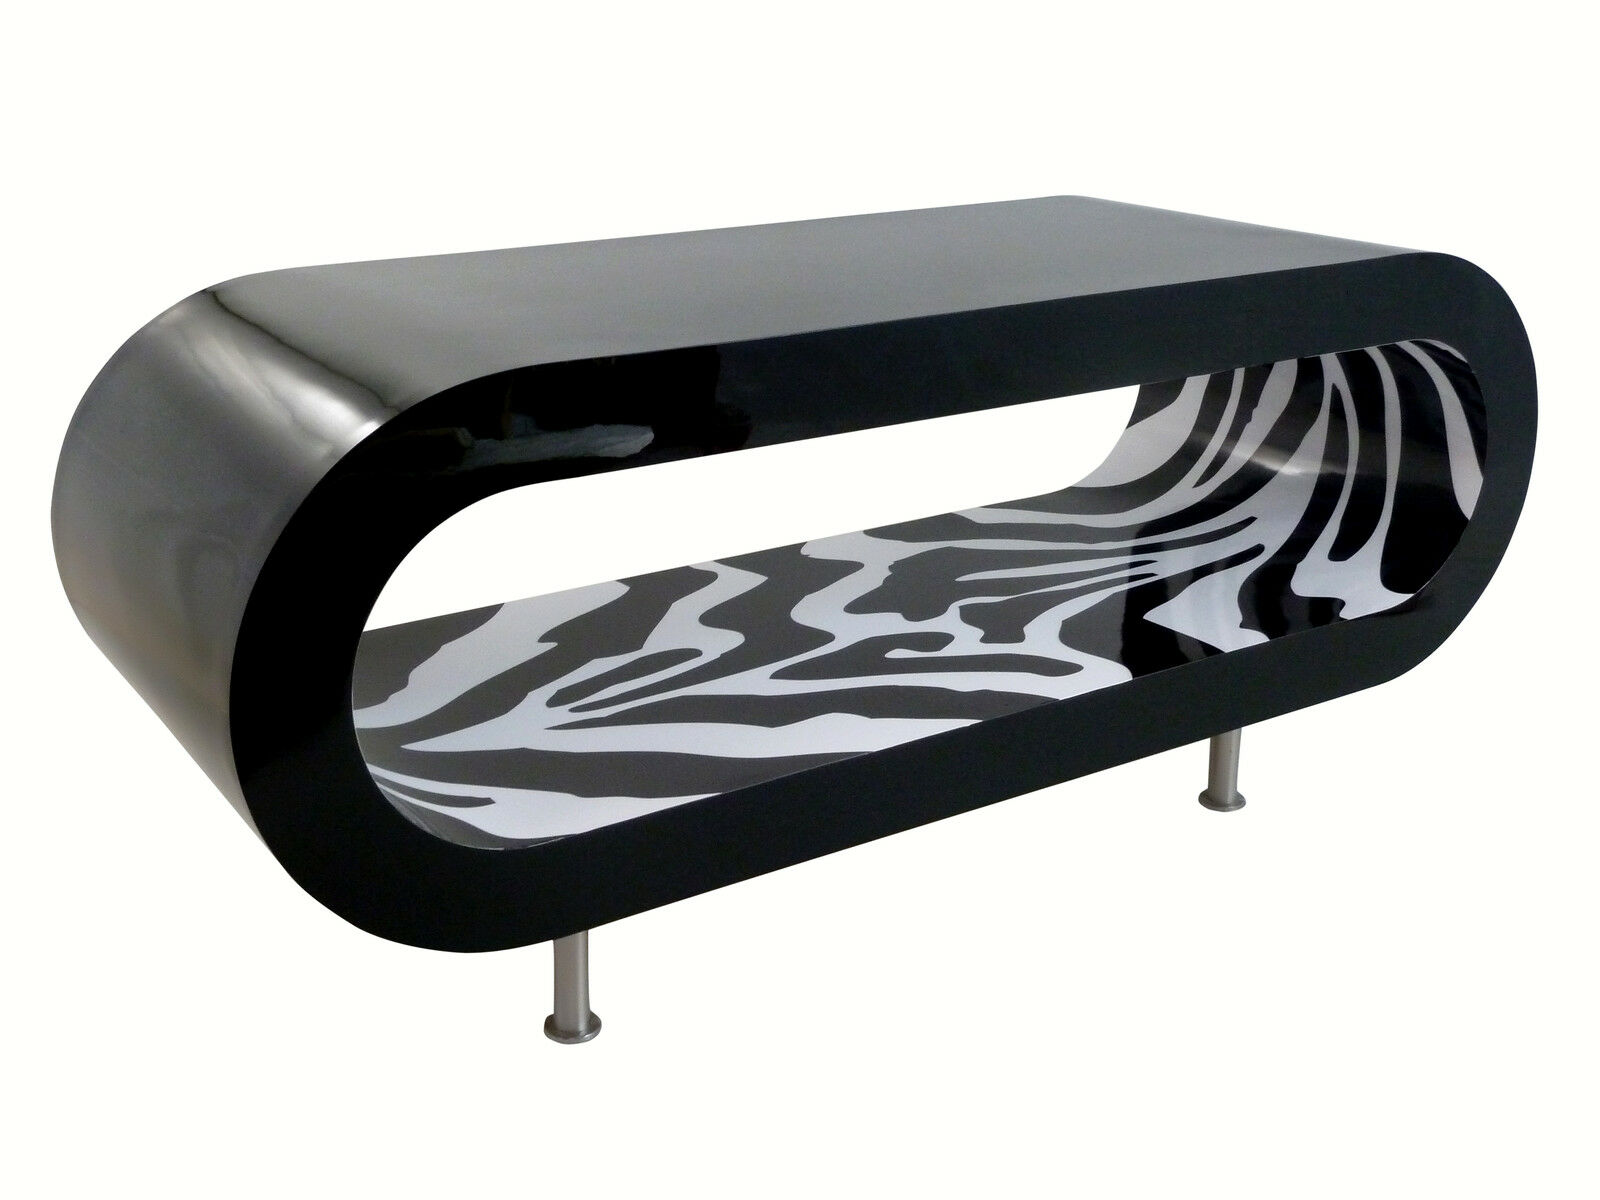 Retro Designer Coffee Table Zebra Stripe Black White Gloss Wooden